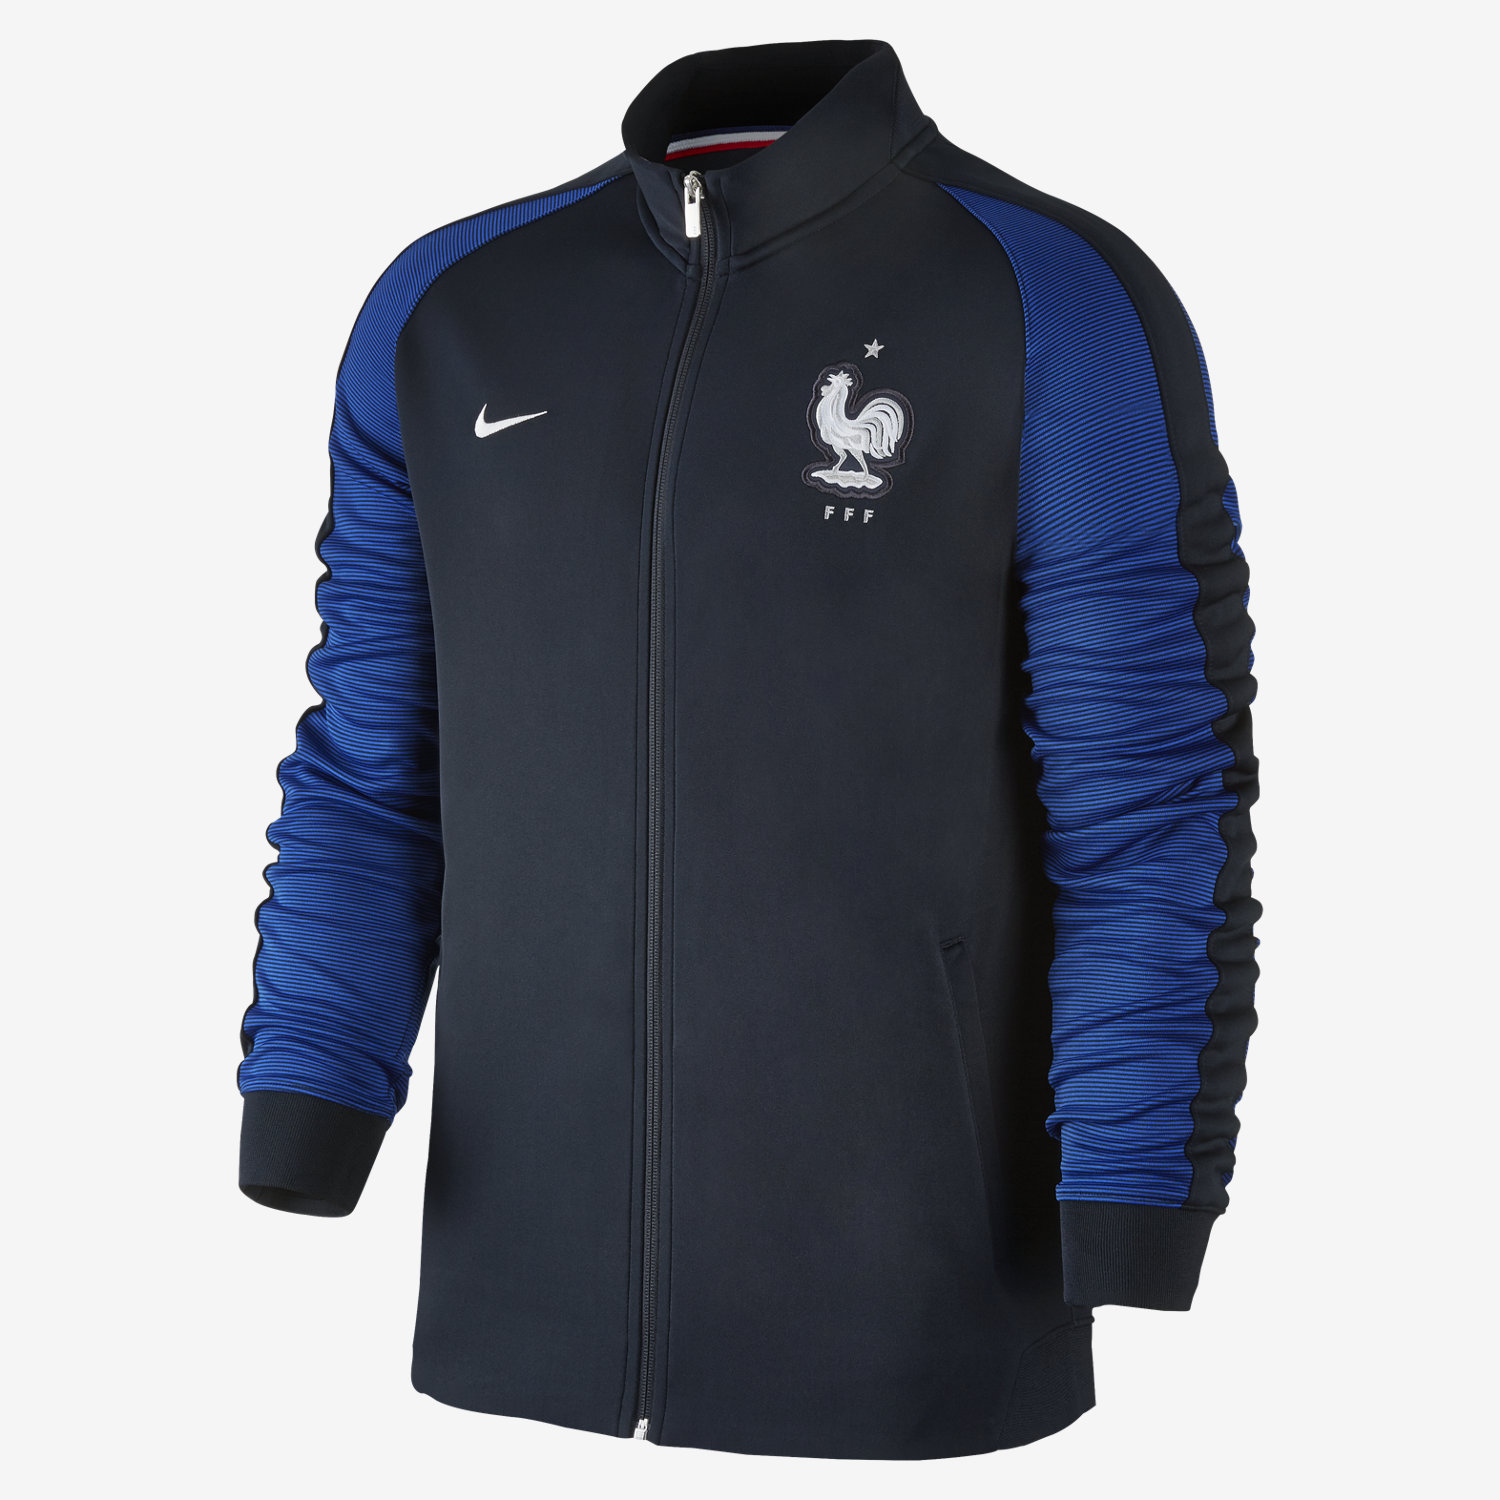 the best attitude 94a5e 368a2 Nike France N98 Auth Jacket 2016/17 - Navy